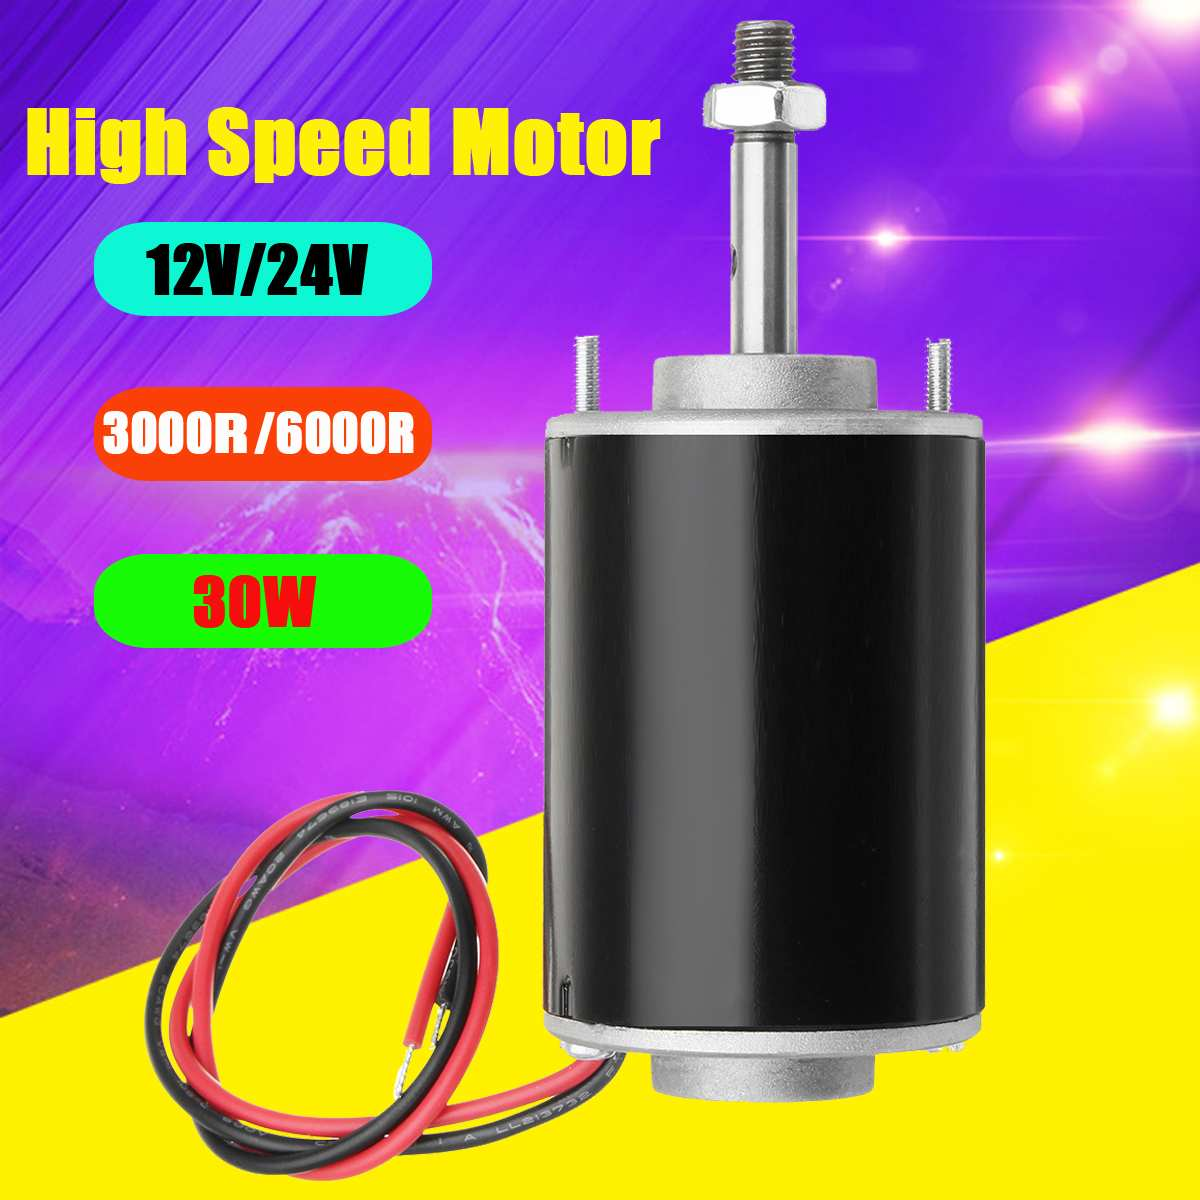 12/24V 30W 3000/6000rpm High Speed Permanent Magnet DC Motor For DIY Generator for Car Truck Grinders Electric Drills Boat Toys